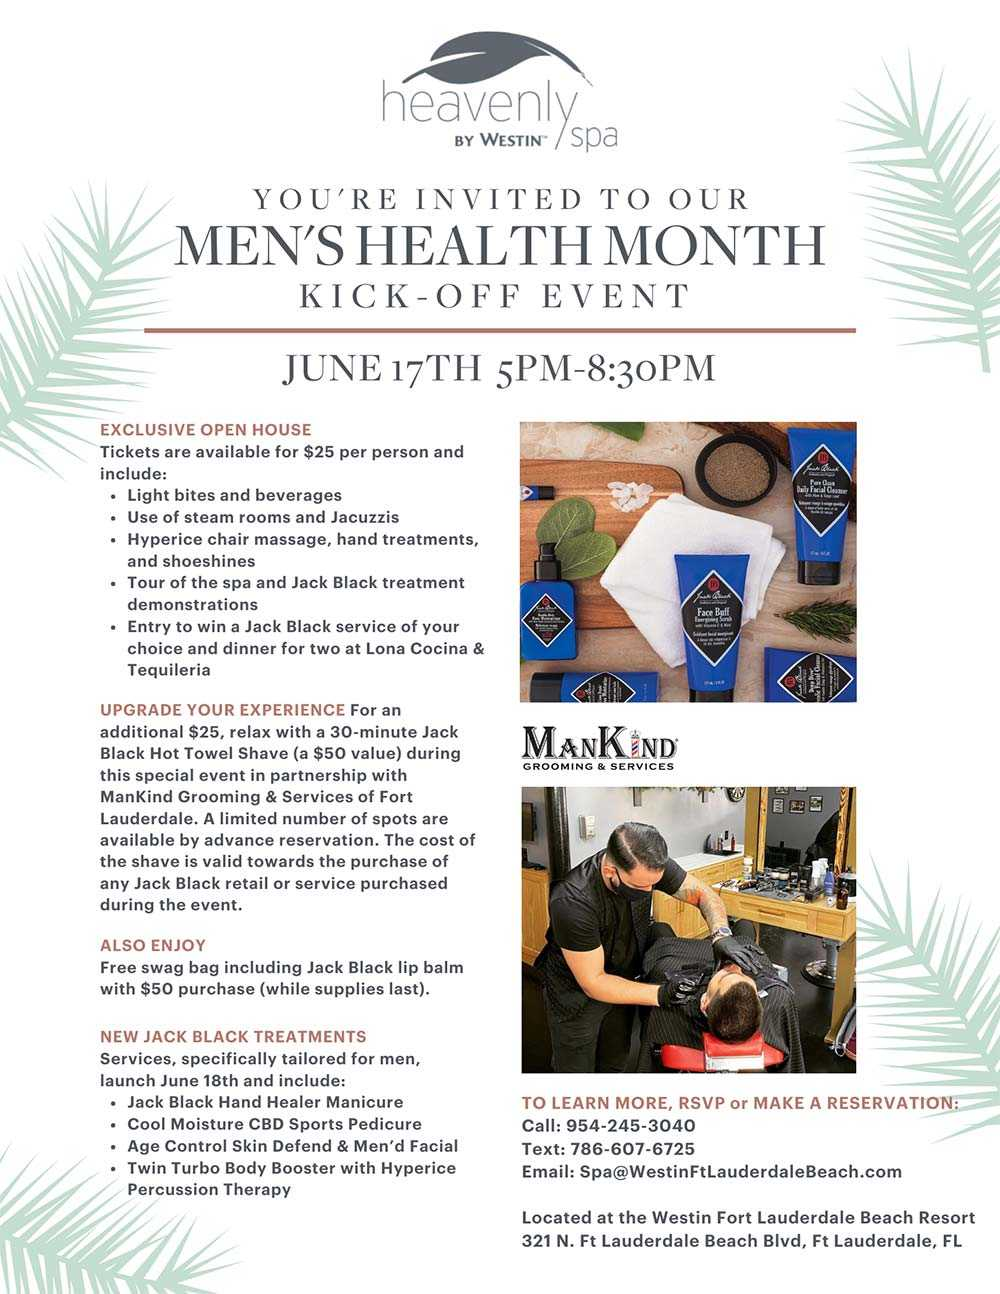 You're Invited to our Men's Health Month Kick Off Event on July 17th from 5:00pm to 8:30pm